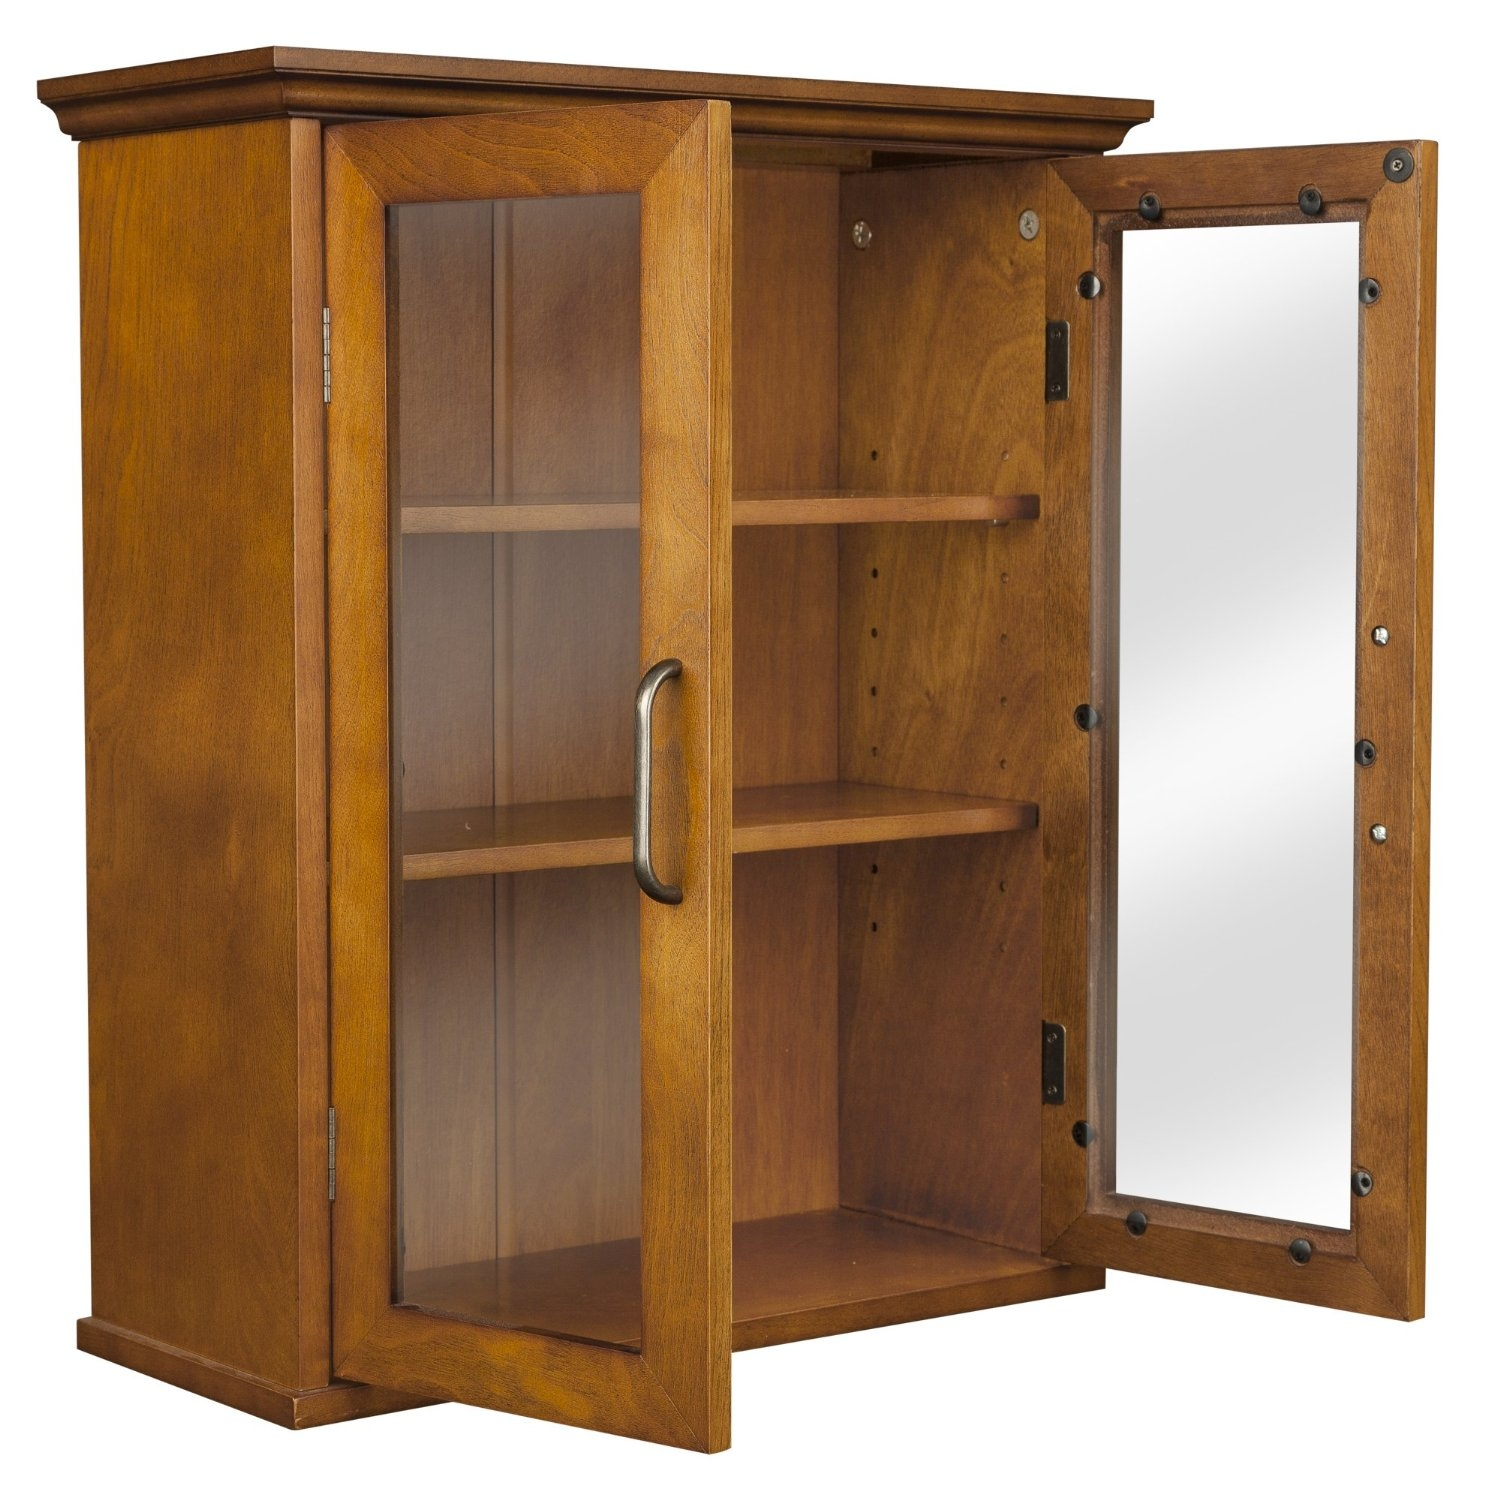 Oak finish bathroom wall cabinet with glass 2 doors shelves for Best finish for bathroom cabinets